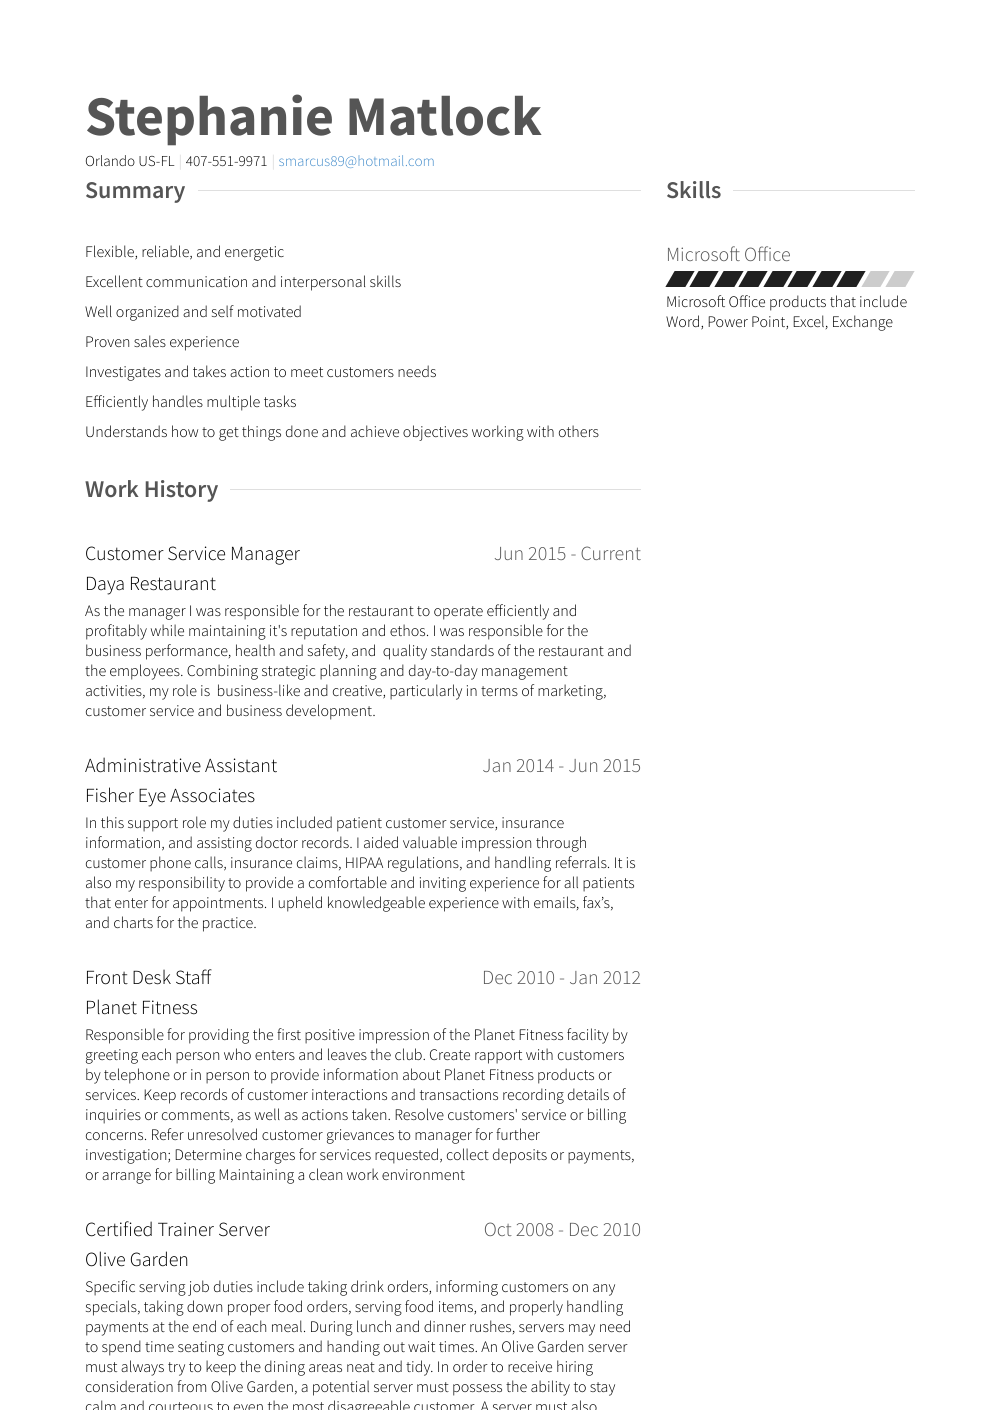 returning to work mom with no experience resume samples